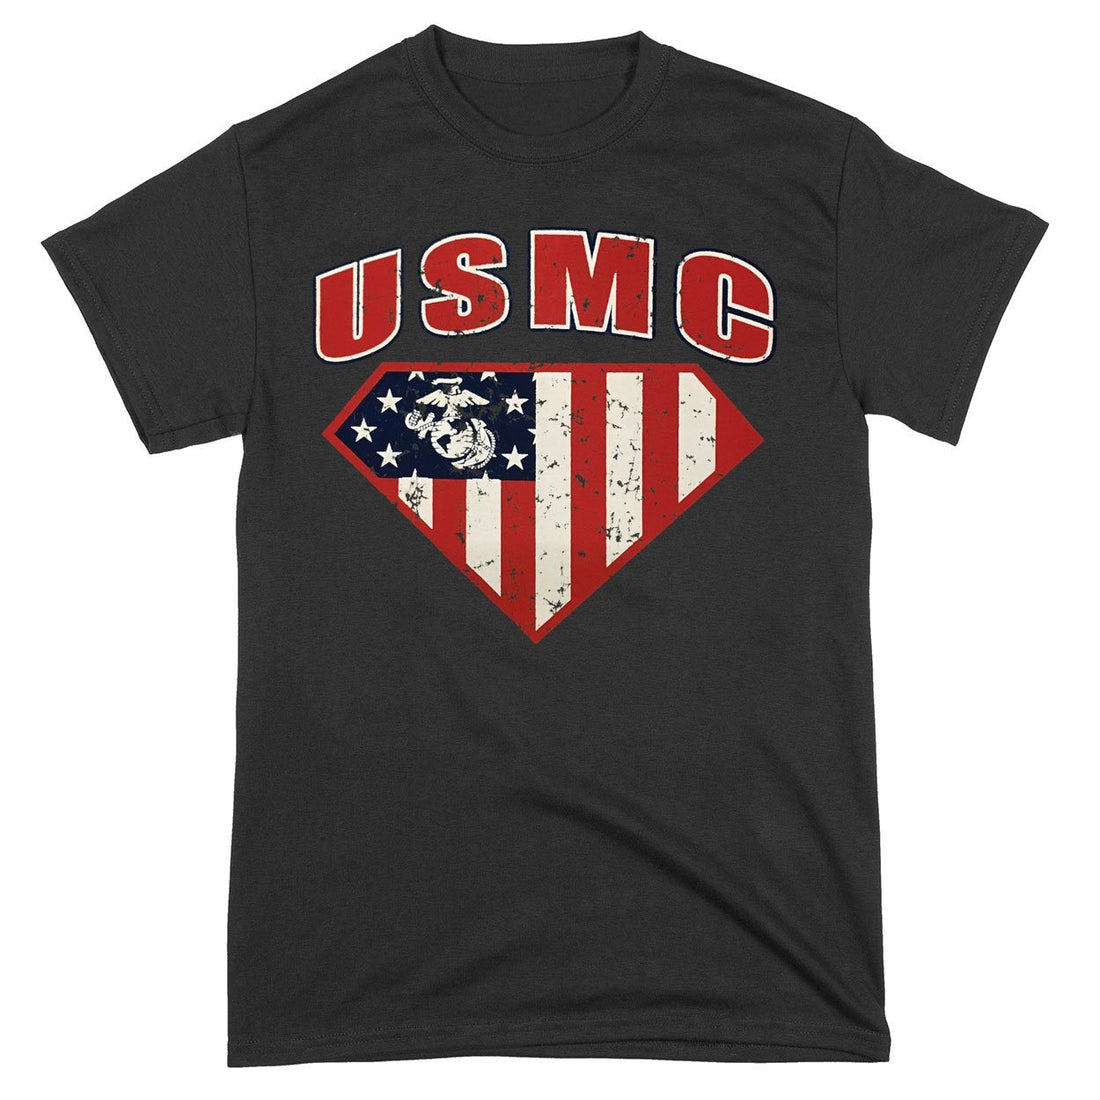 USMC Shield T-Shirt